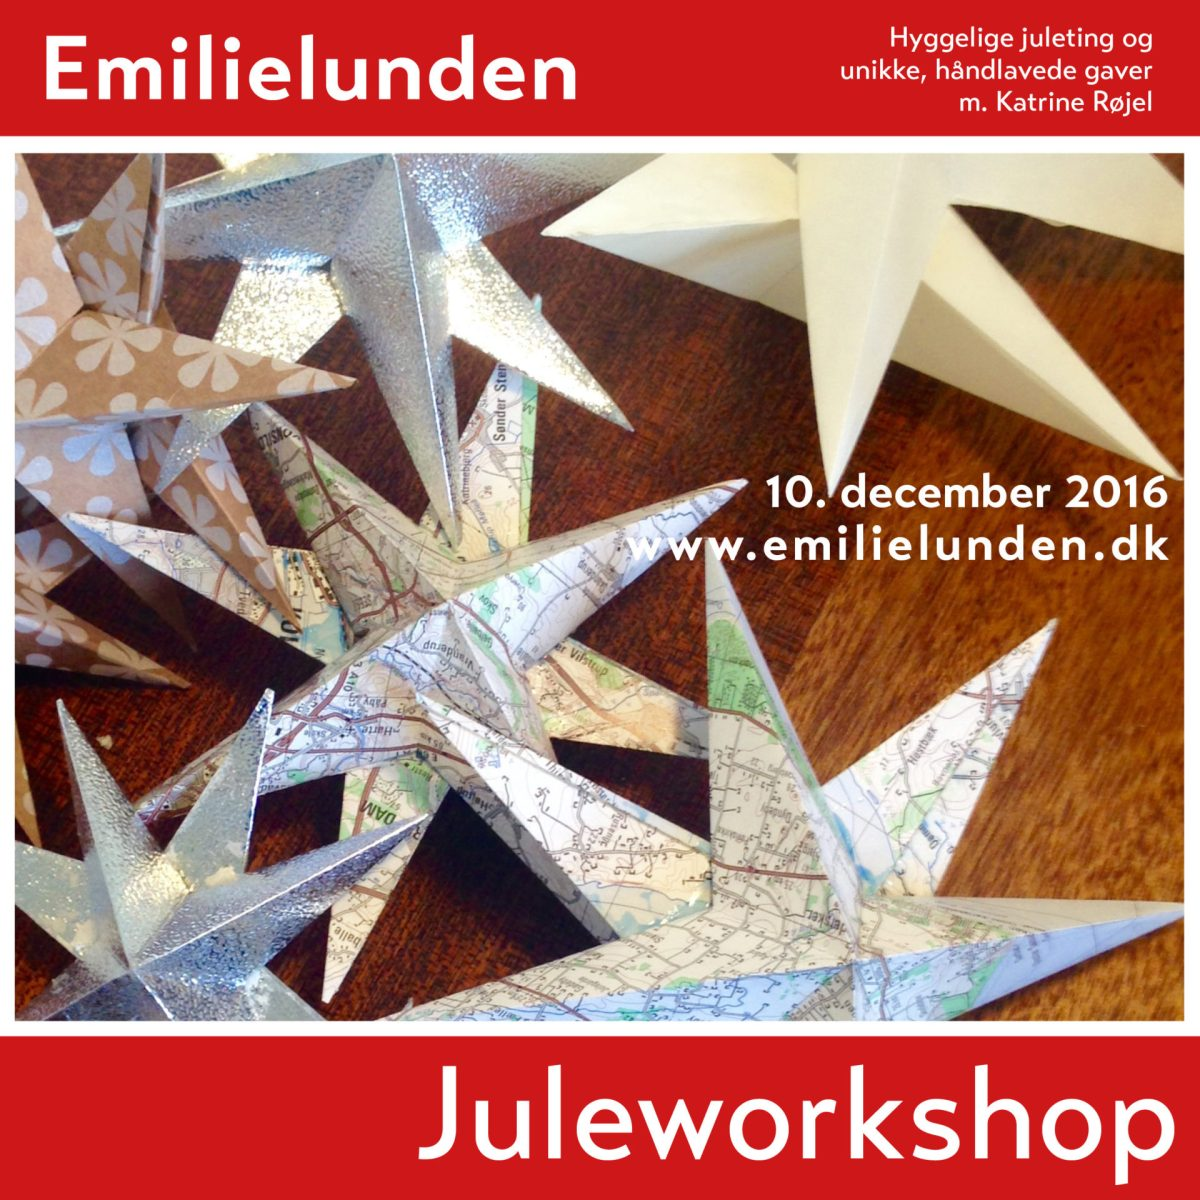 juleworkshop-2016-fb